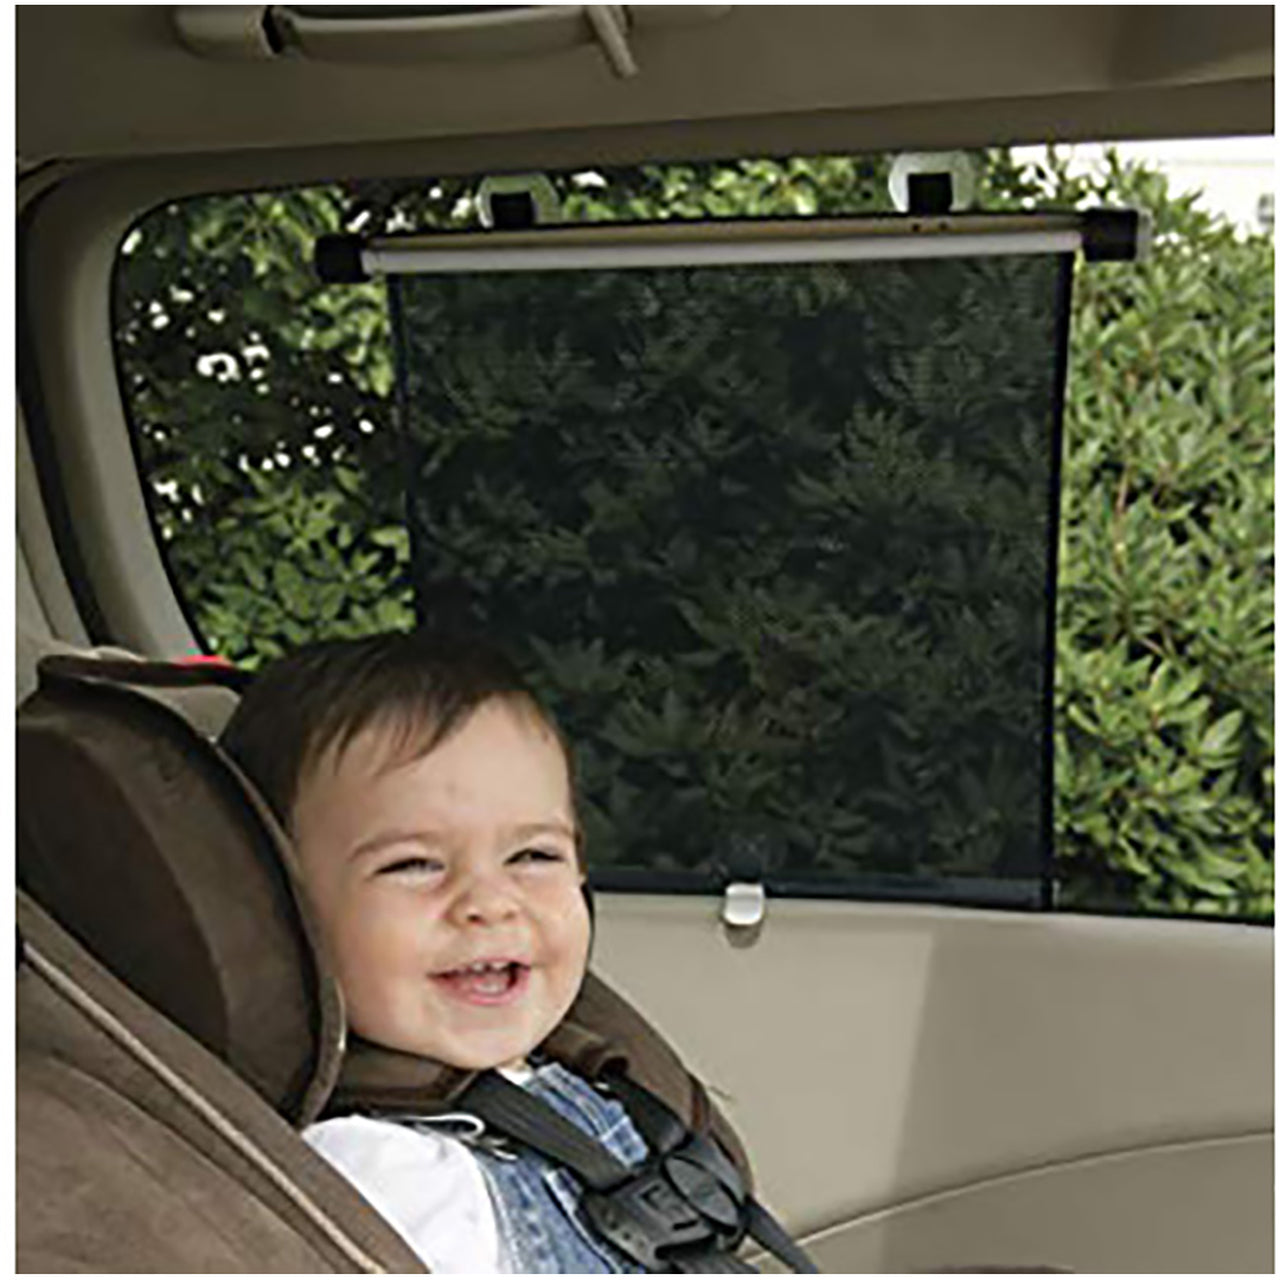 Safety 1st Deluxe Roller Shade 2 Pack - Happy Baby